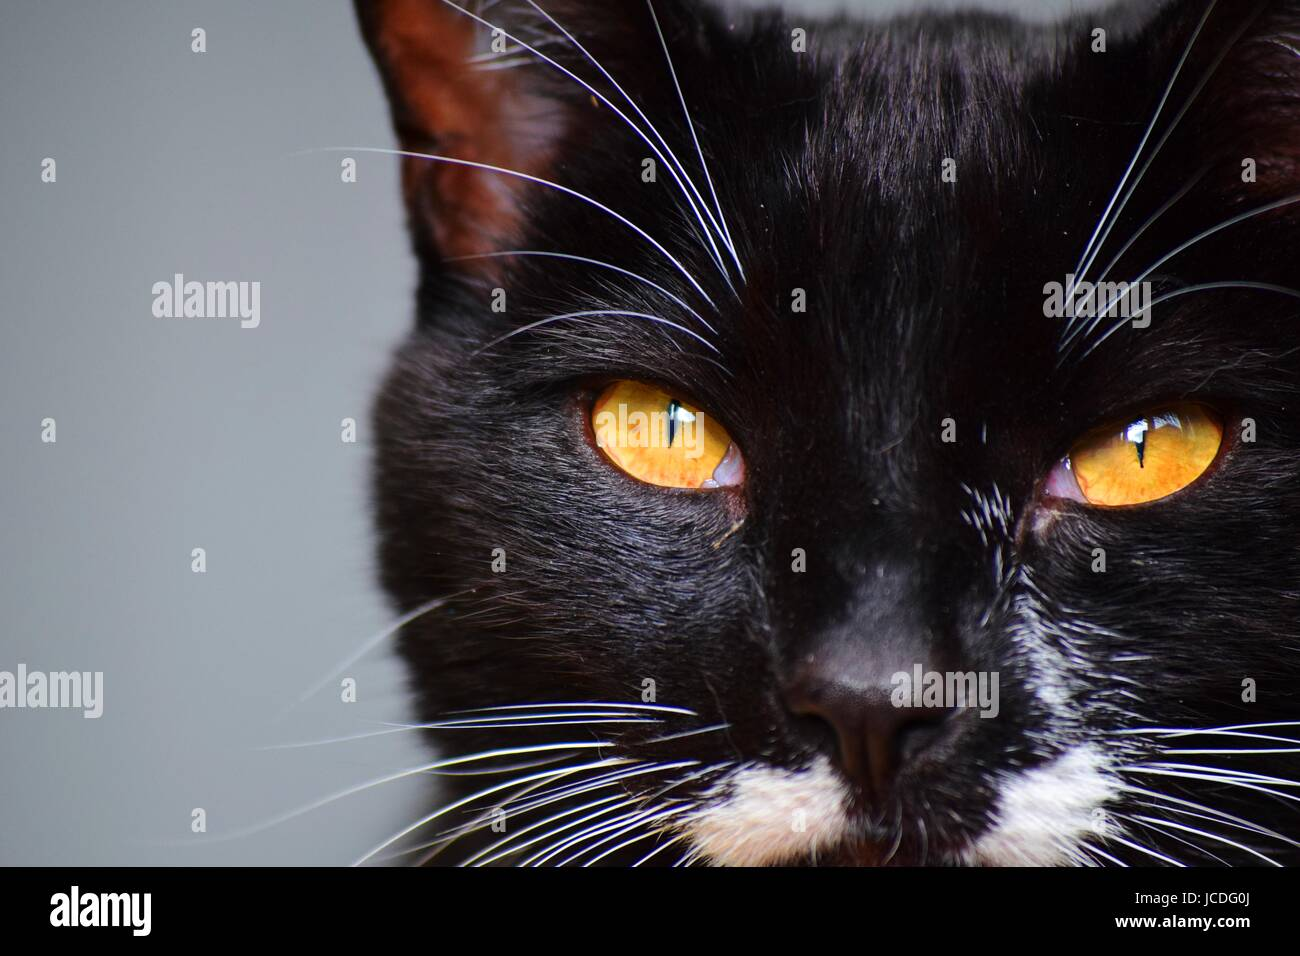 Close-up of black cat with yellow eyes and tuxedo markings - Stock Image